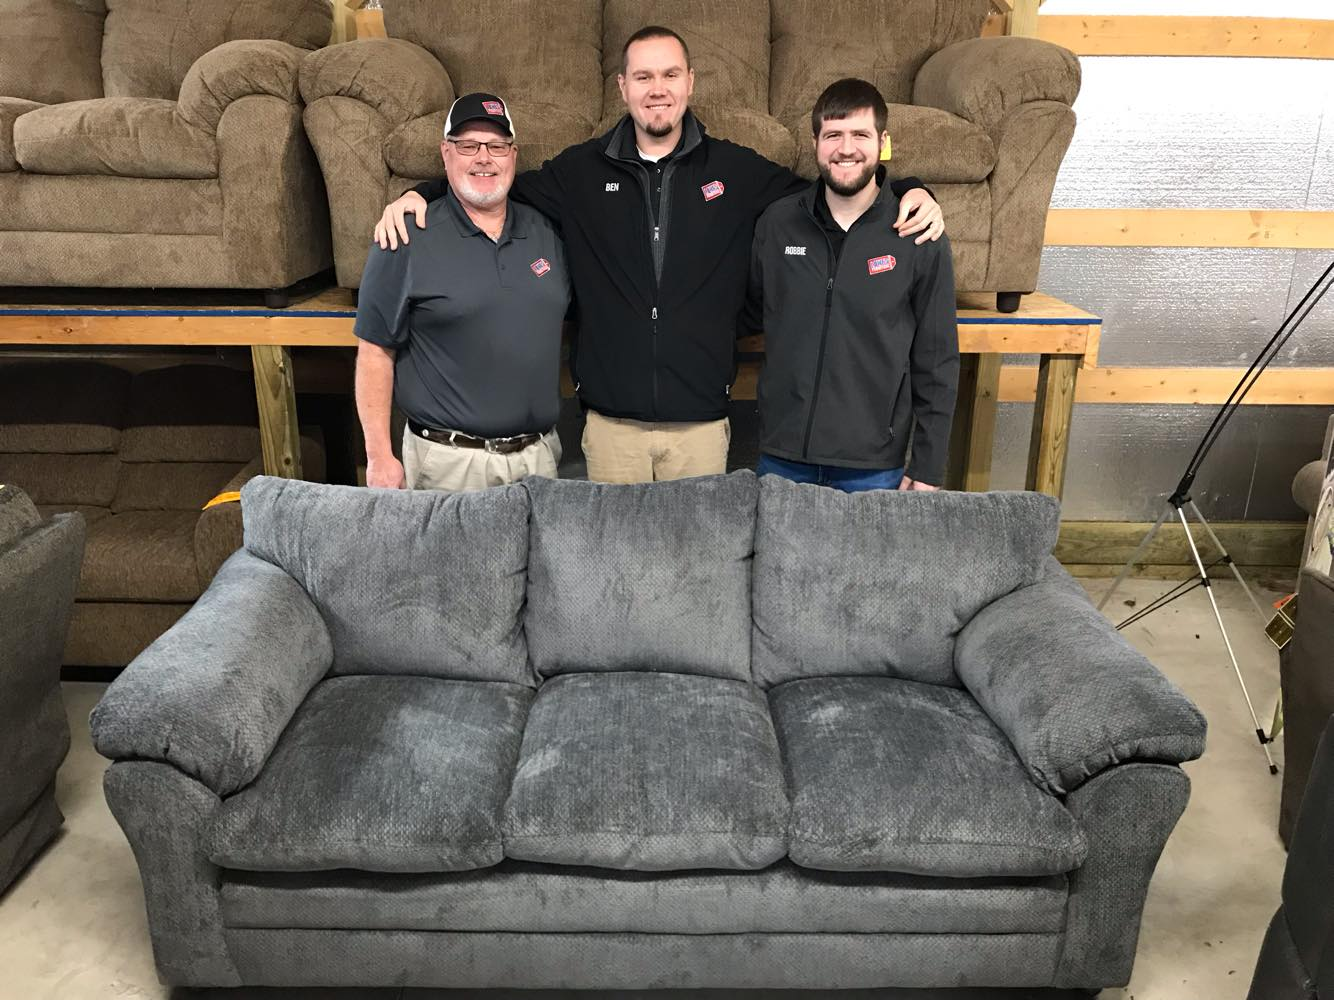 Paul Lowe (left), Big Ben Lowe (center) and Robbie Hisey (right) stand behind the beautiful new sofa Lowe's Bargain Barn Furniture is giving away to thank their customers during the holiday season.